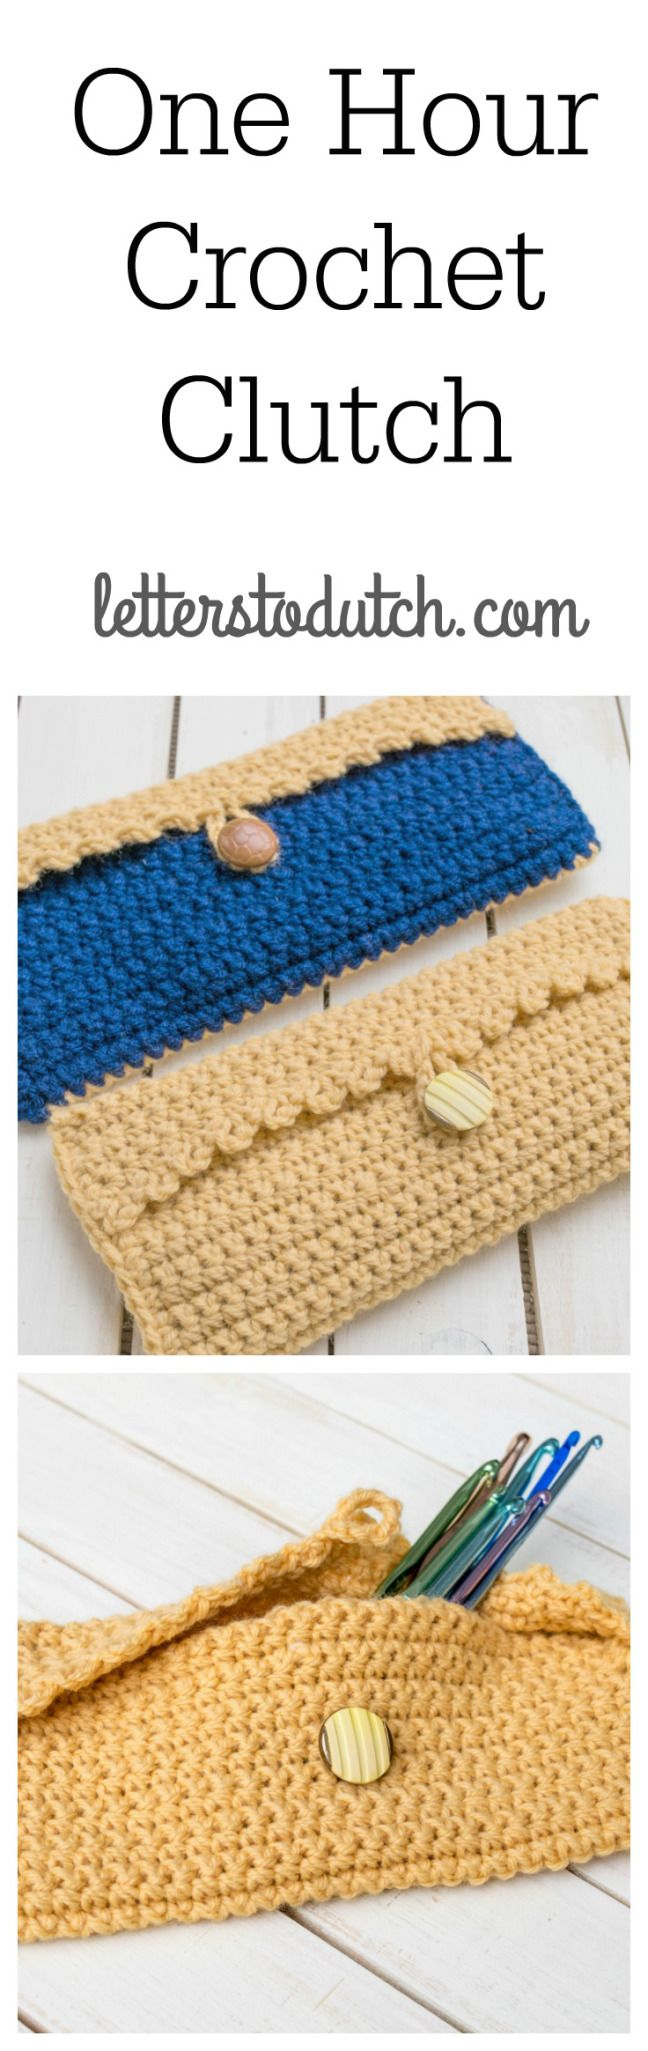 I love this crochet clutch! It can be worked up in just one hour, and would make a cute gift for a friend (or for yourself too!). #crochetclutch #easycrochet #freecrochetpattern